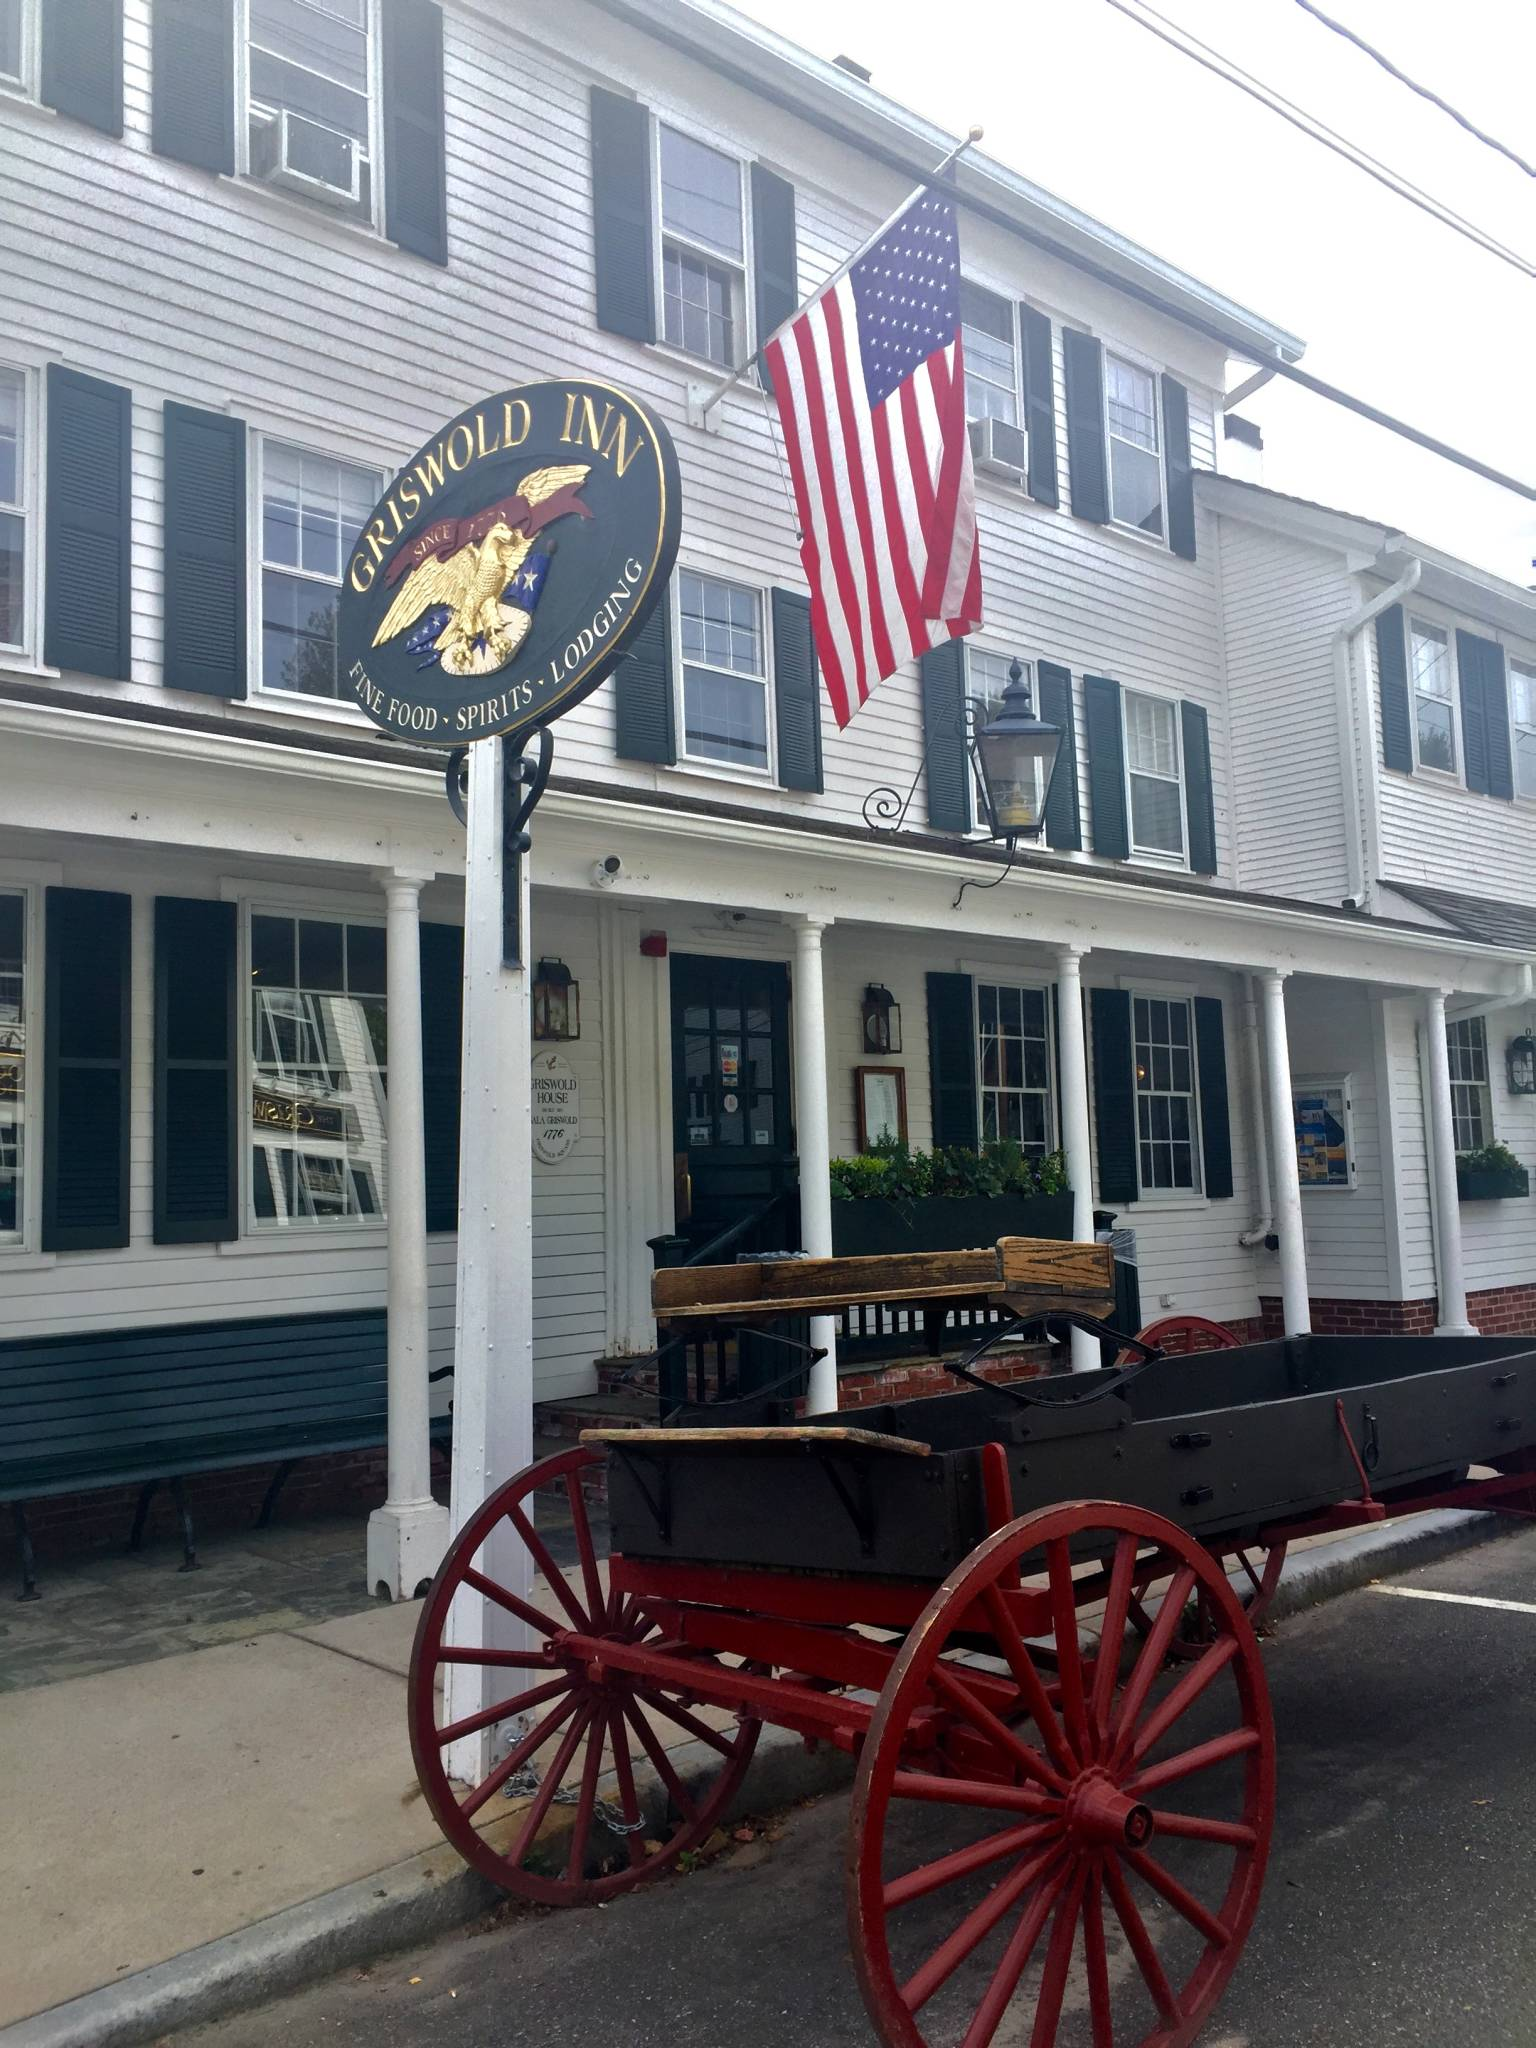 Griswold Inn, US' oldest inn – open for more that 200 years